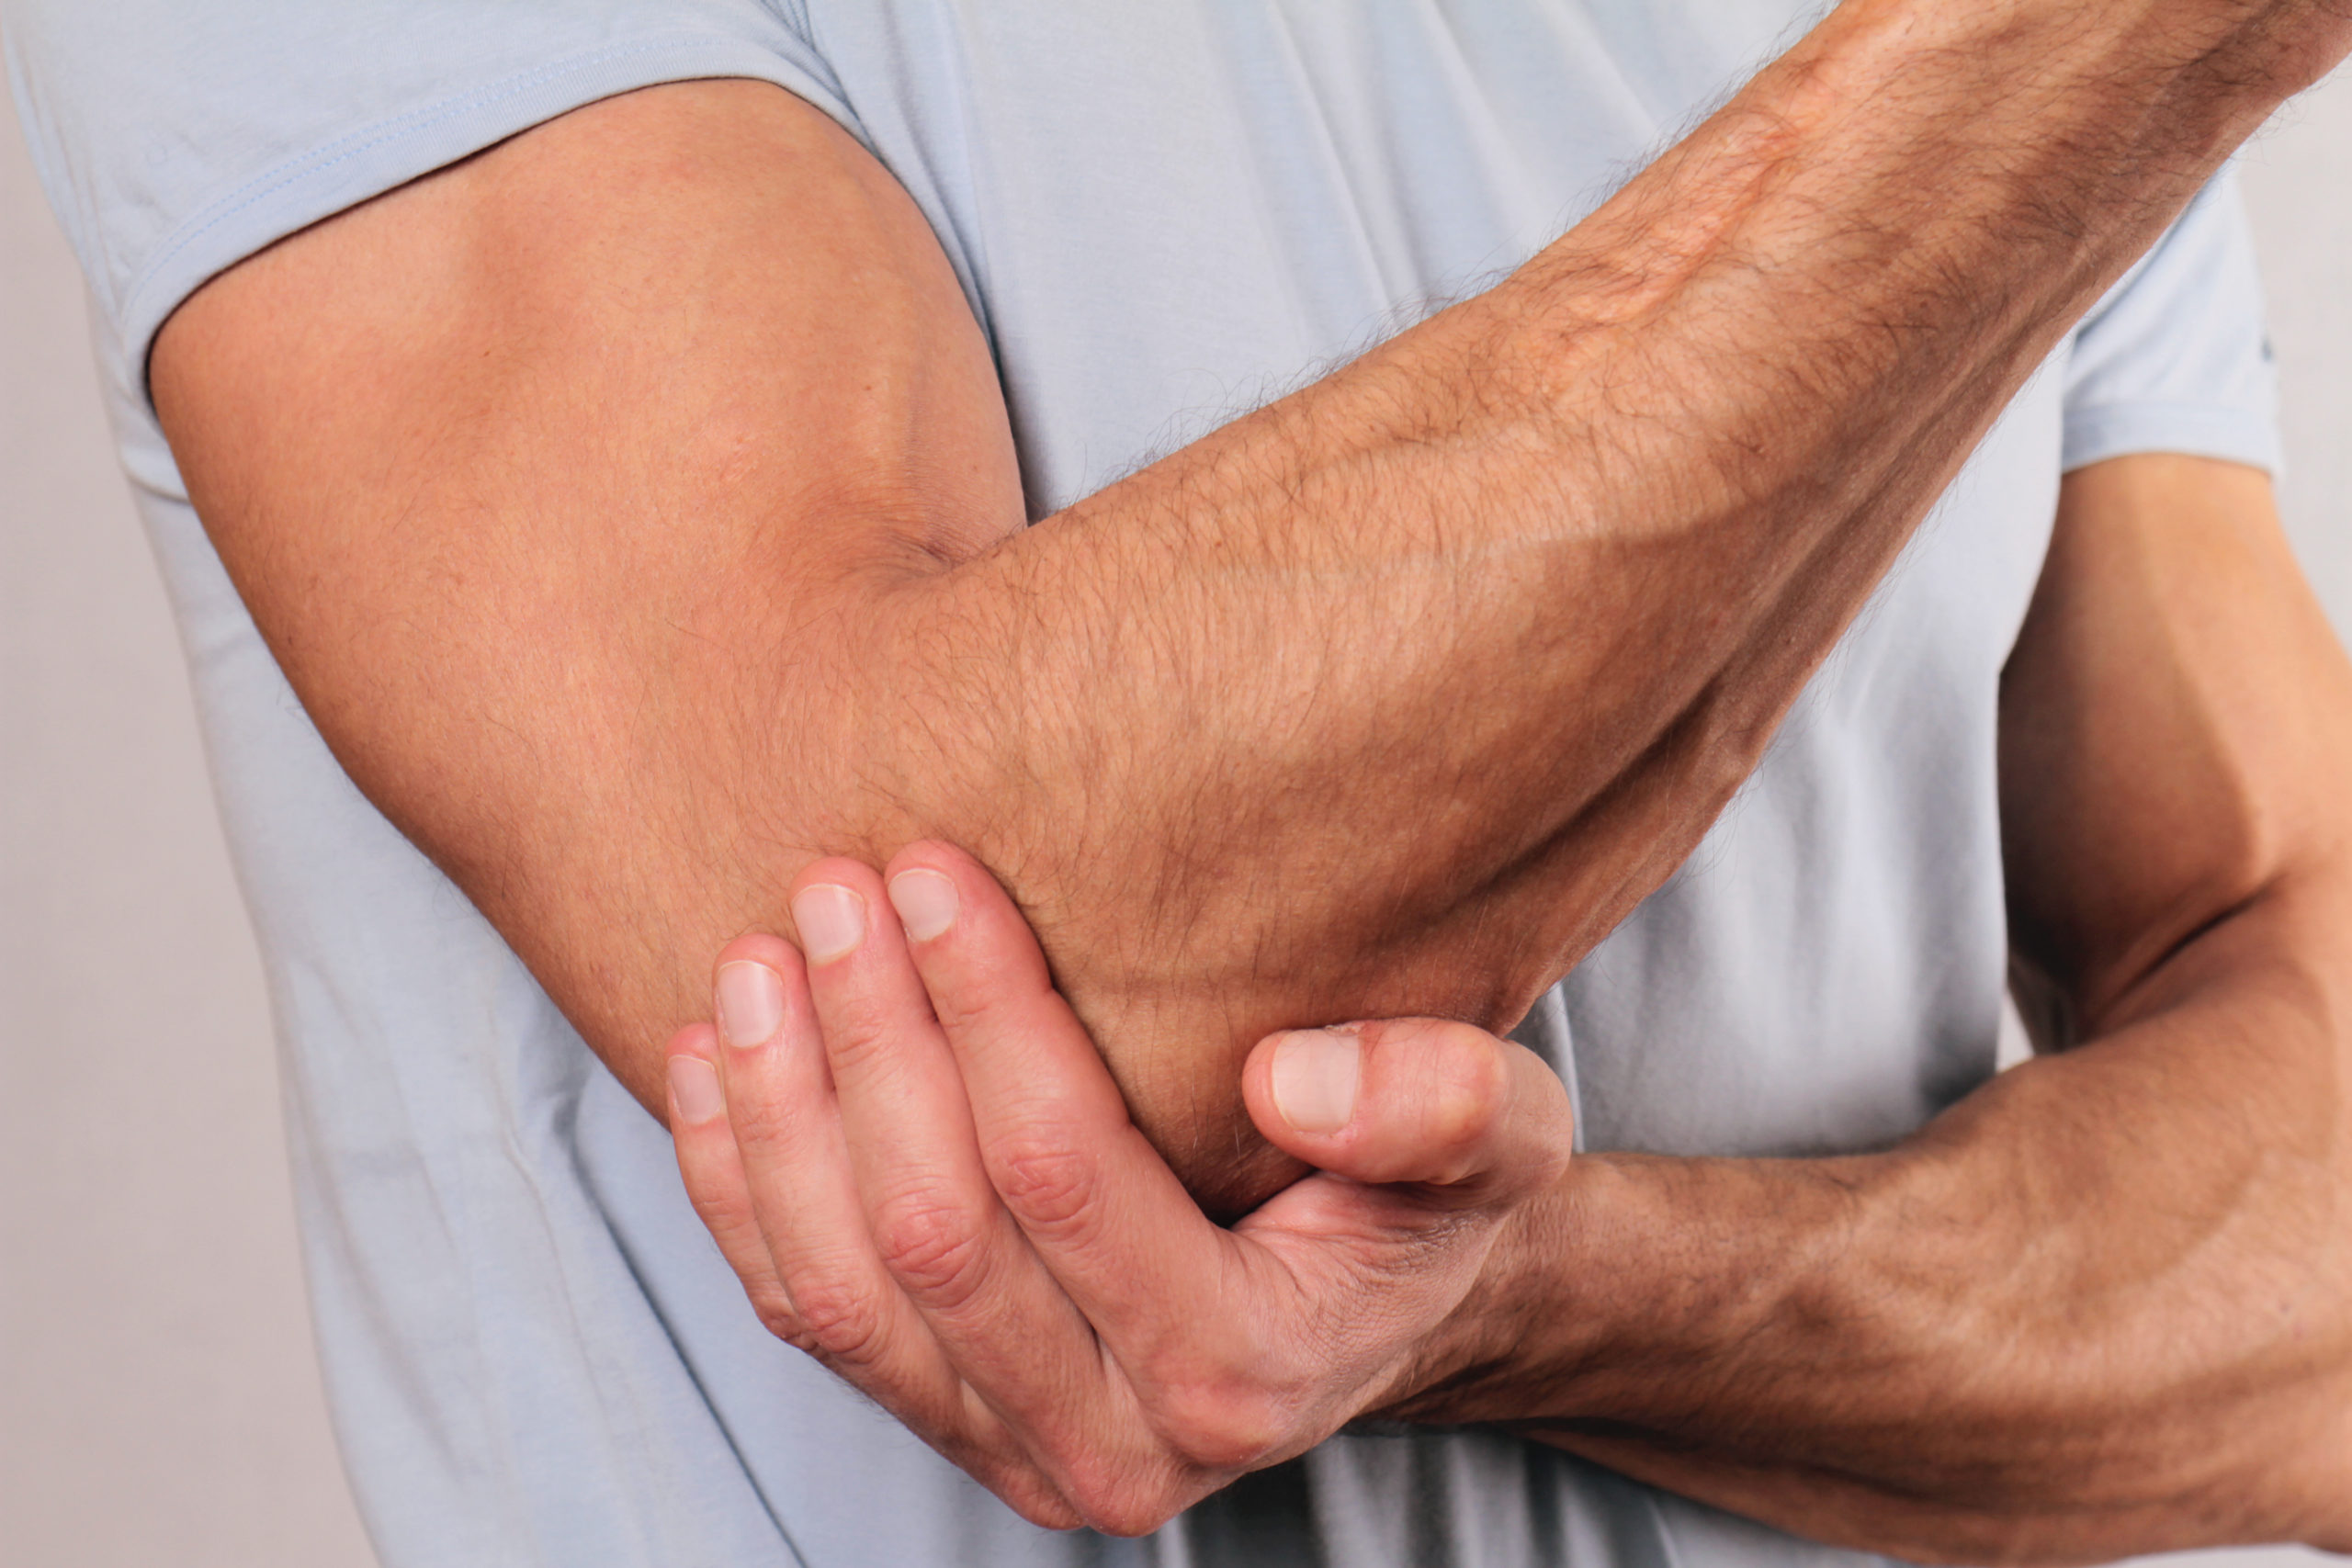 tennis elbow pain Driven Fit SWS South Tampa Gym